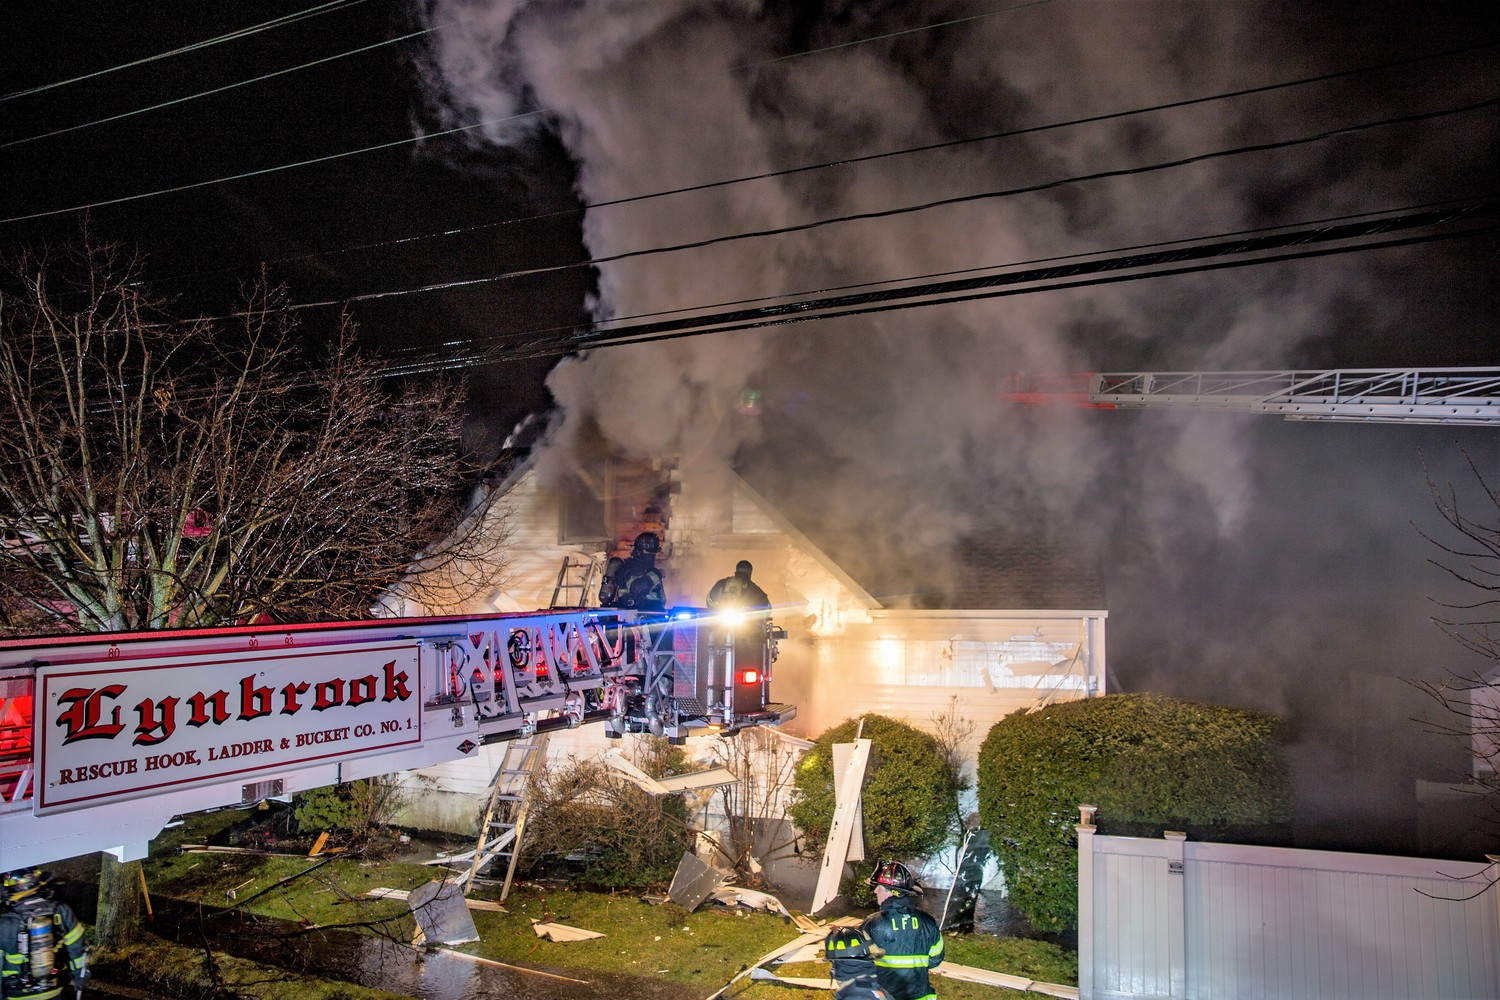 Members of the Lynbrook Fire Department responded to a Christmas Eve blaze at a house on Linden Street.